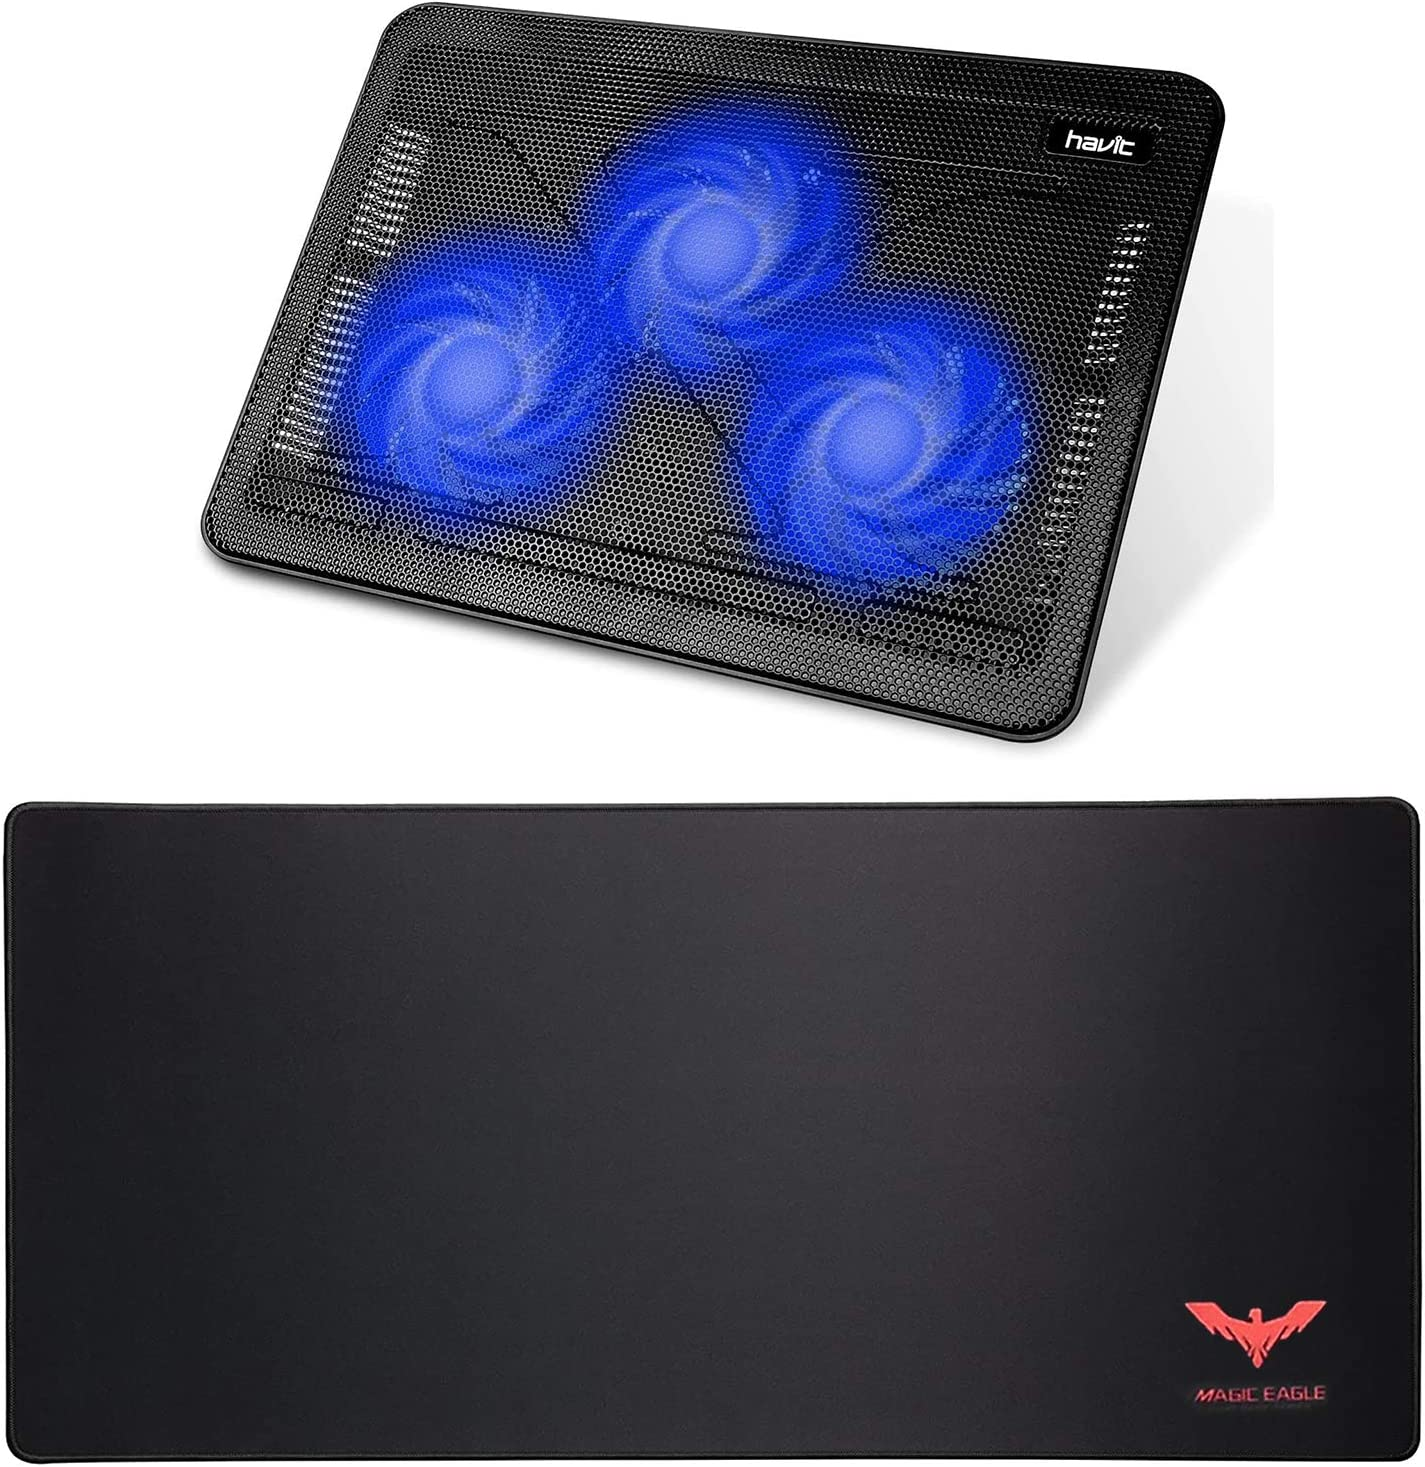 Havit Laptop Cooling Pad and Mouse Pad